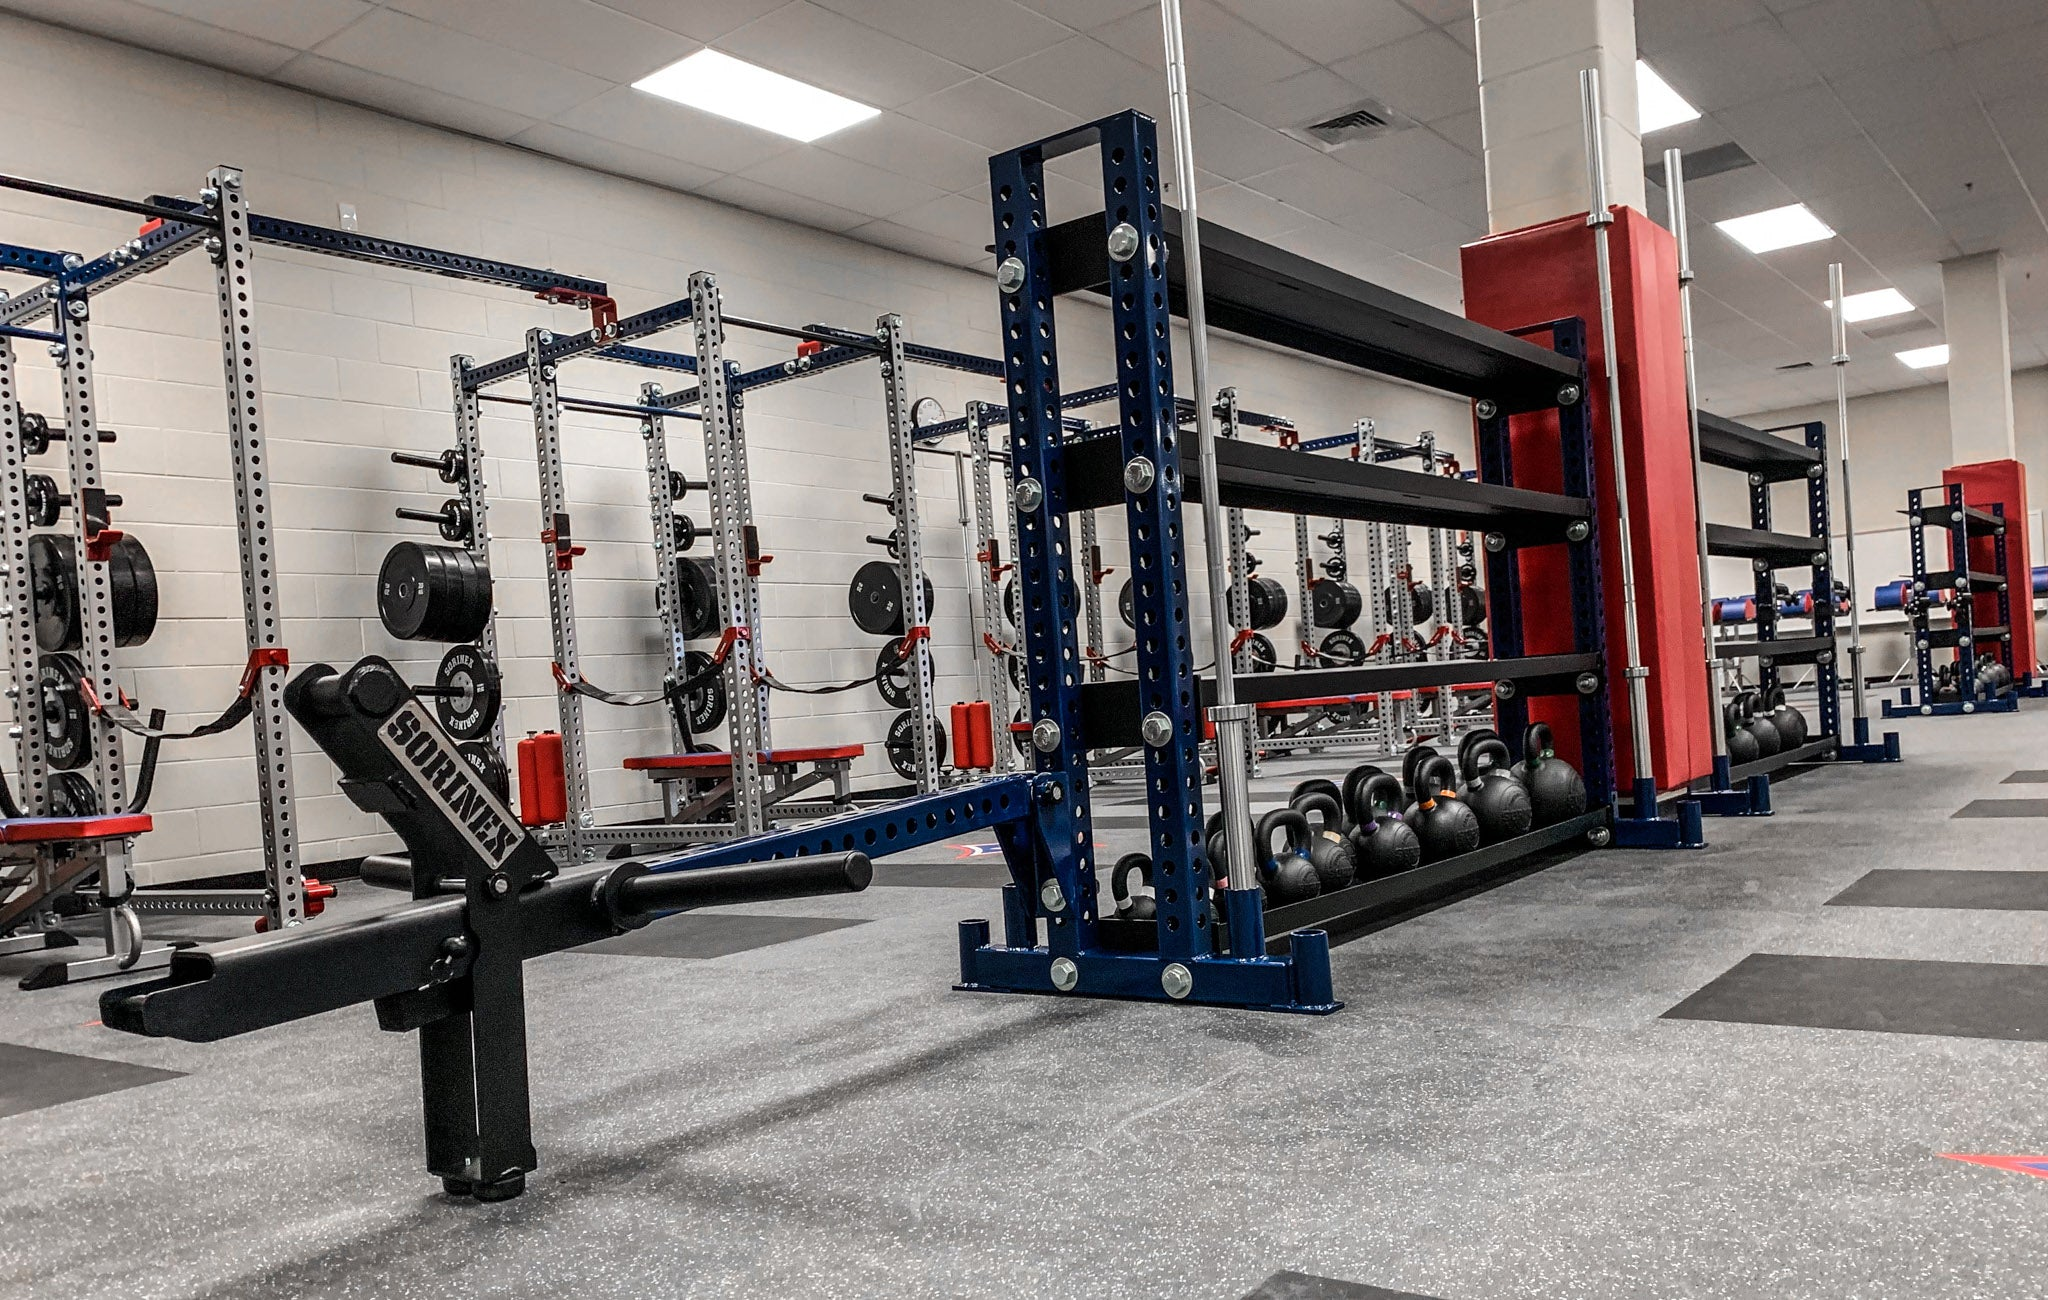 walton High School training facility